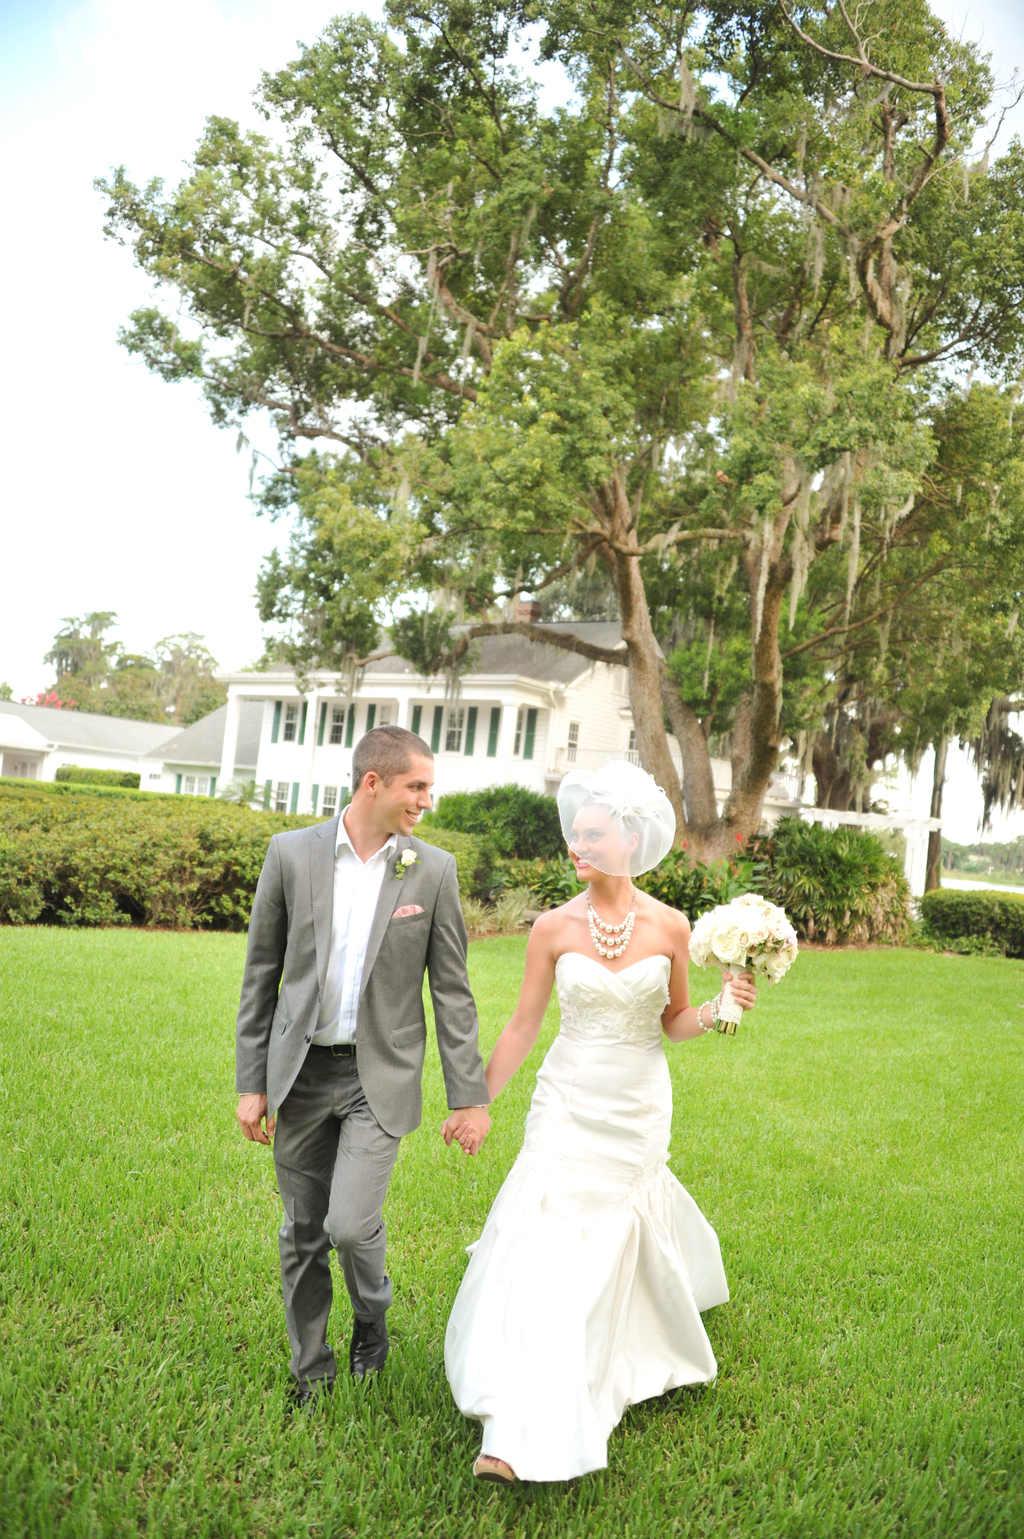 Bride-and-groom-walk-hand-in-hand-at-outdoor-florida-venue.full